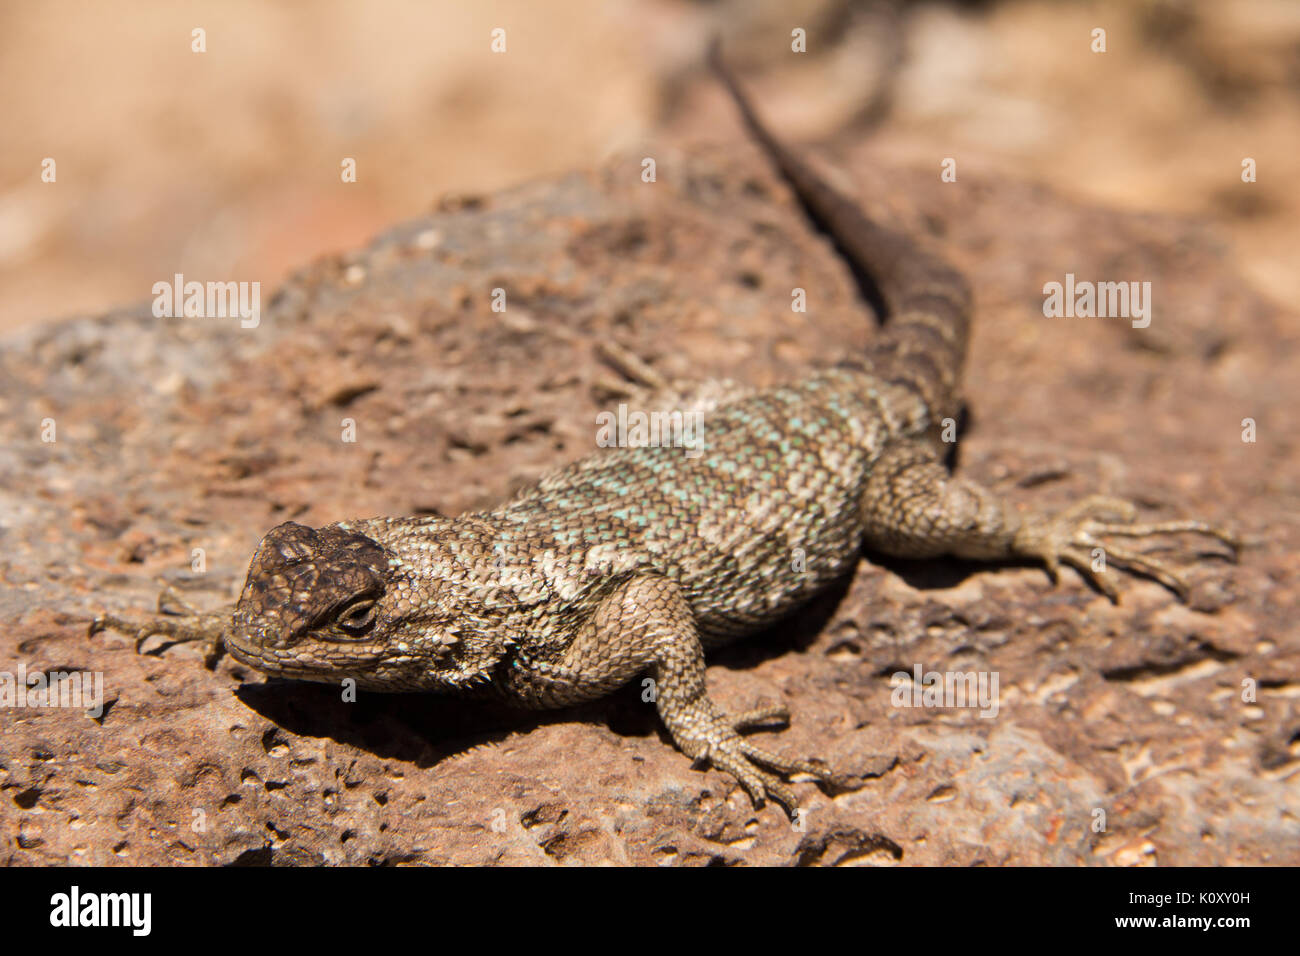 A Western Fence Lizard (Sceloporus occidentalis) on a rock in the Nevada Desert - Stock Image